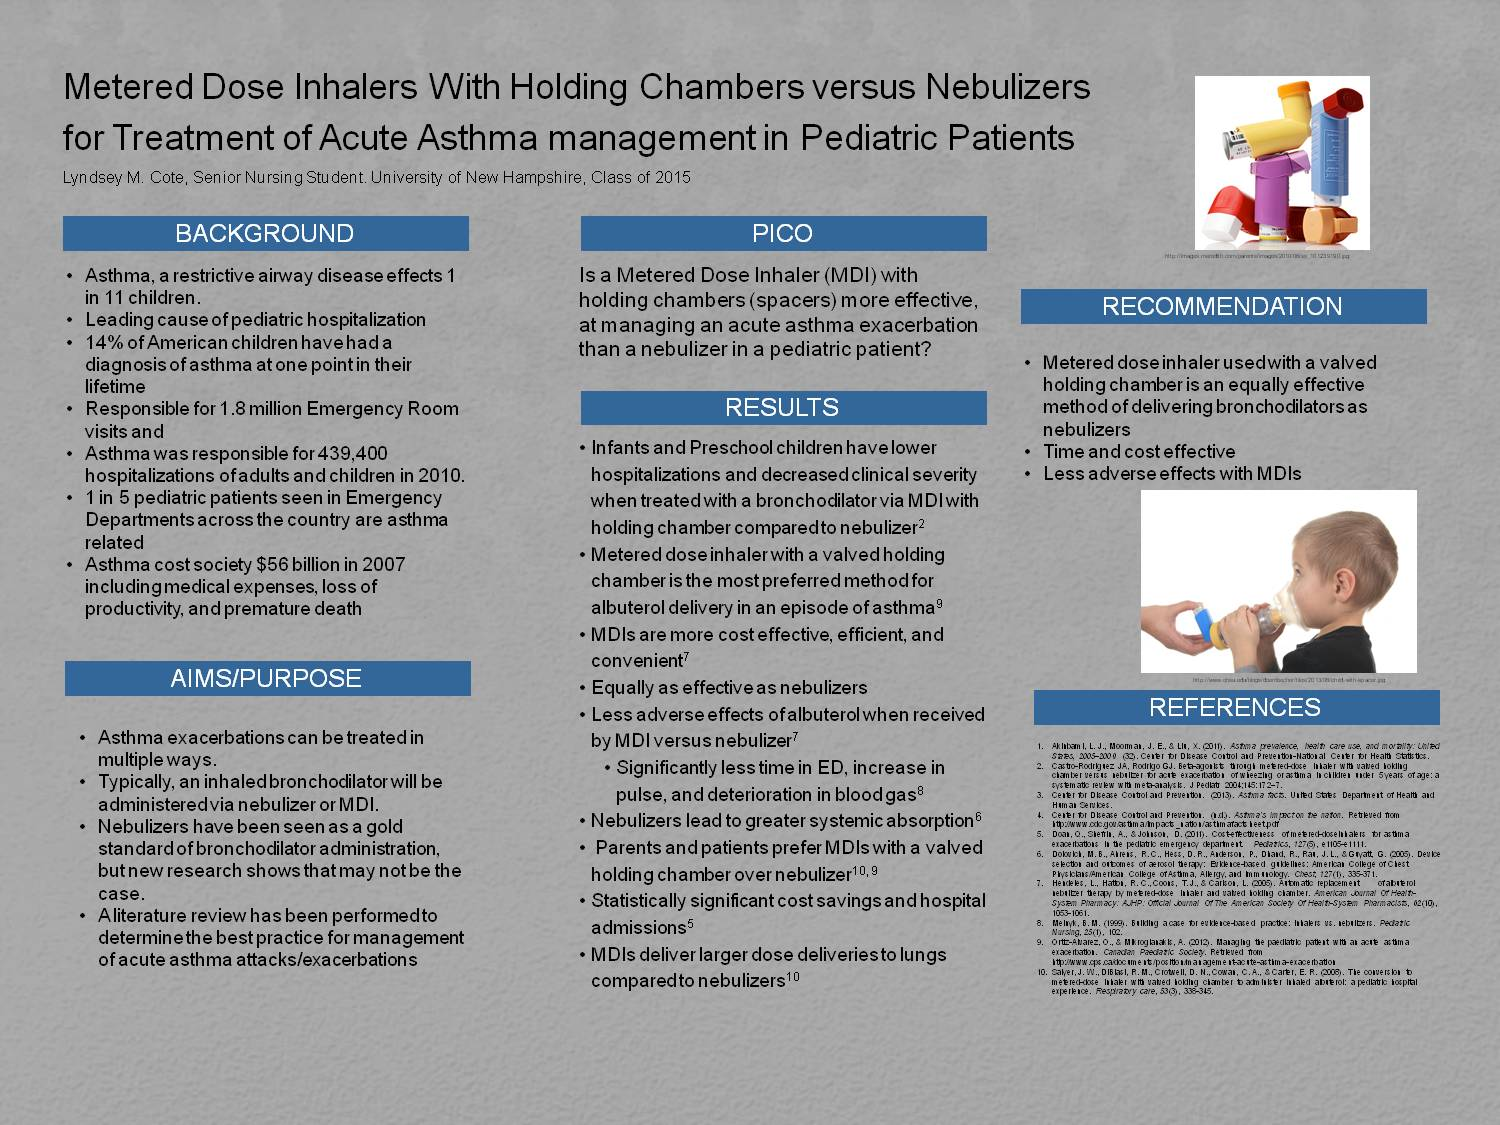 Mdi Vs Nebulizers For Treatment Of Pediatric Asthma by lmn223